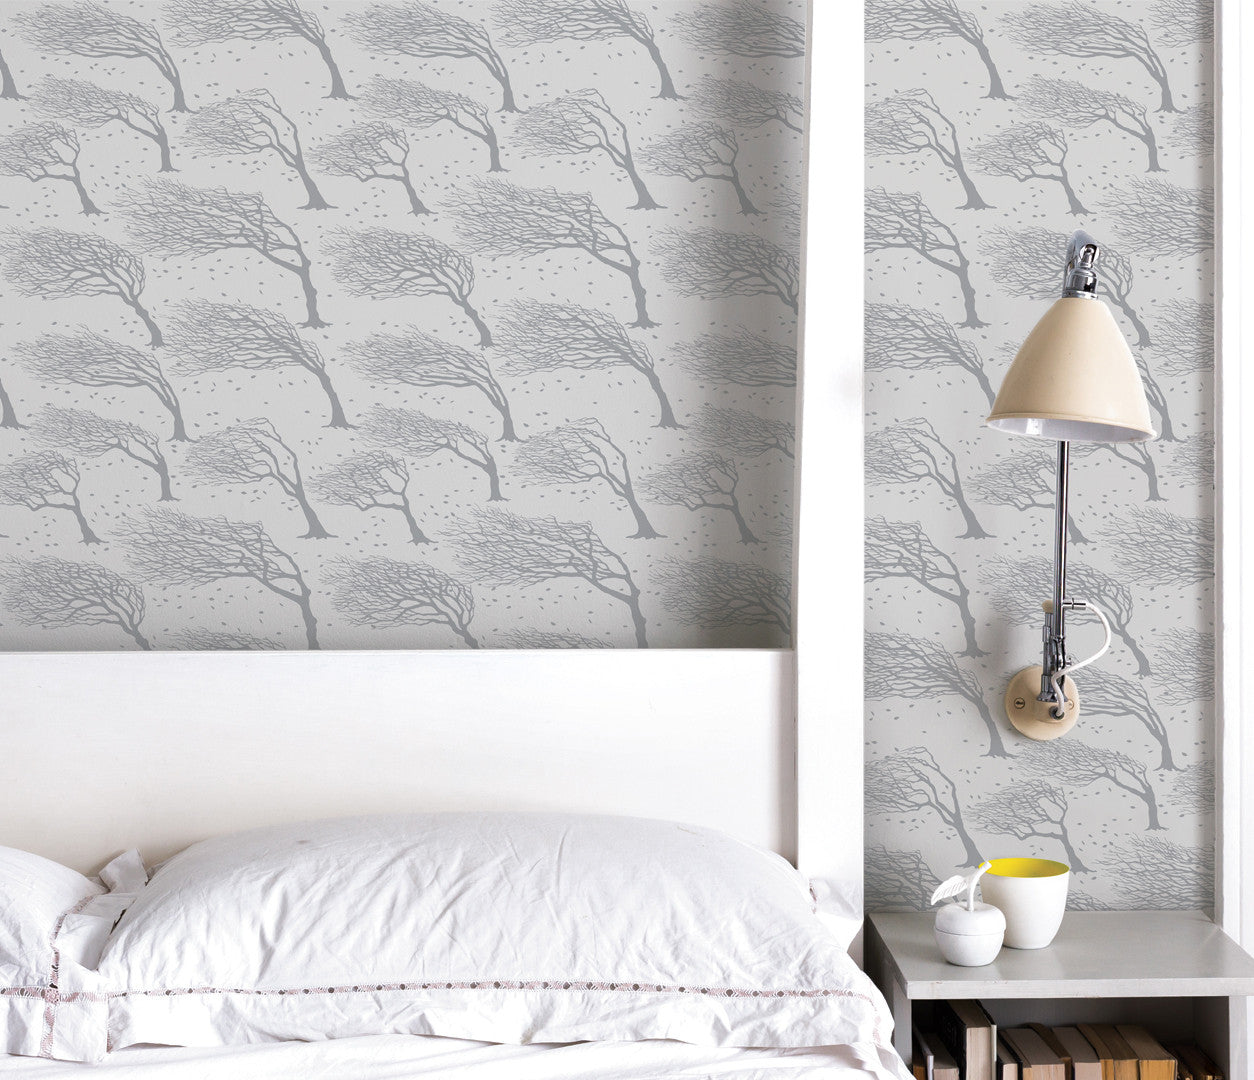 Wall Art Ideas: Economical Screen Prints, Northeasterly Wallpaper in Soft Grey